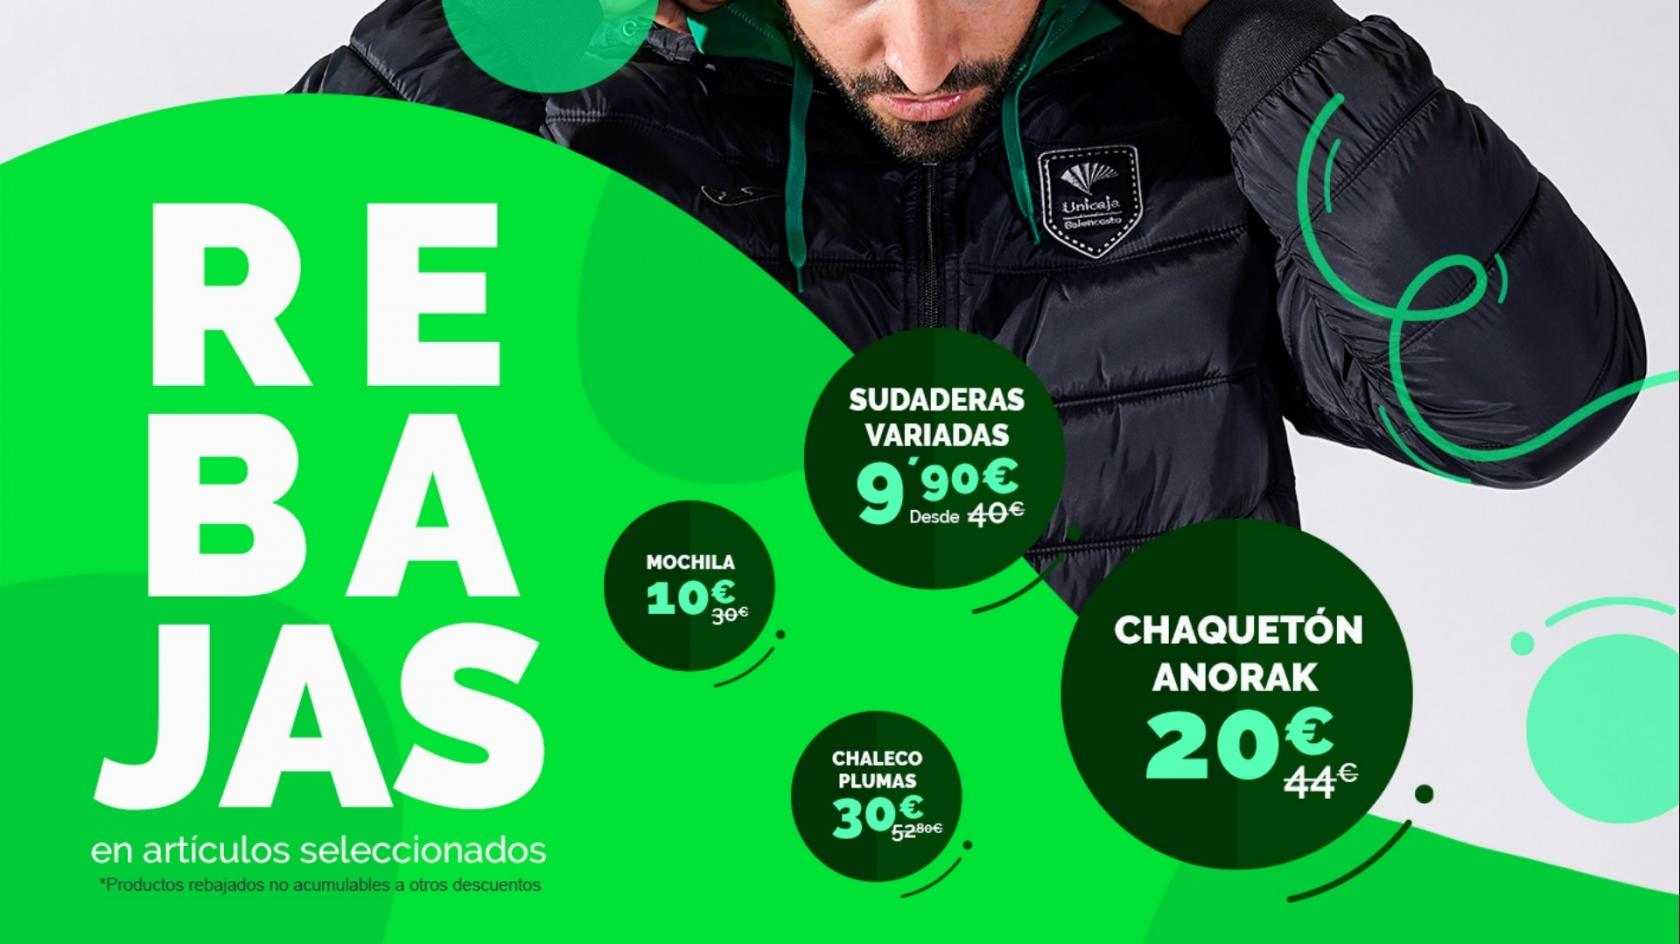 The Unicaja sales are back!